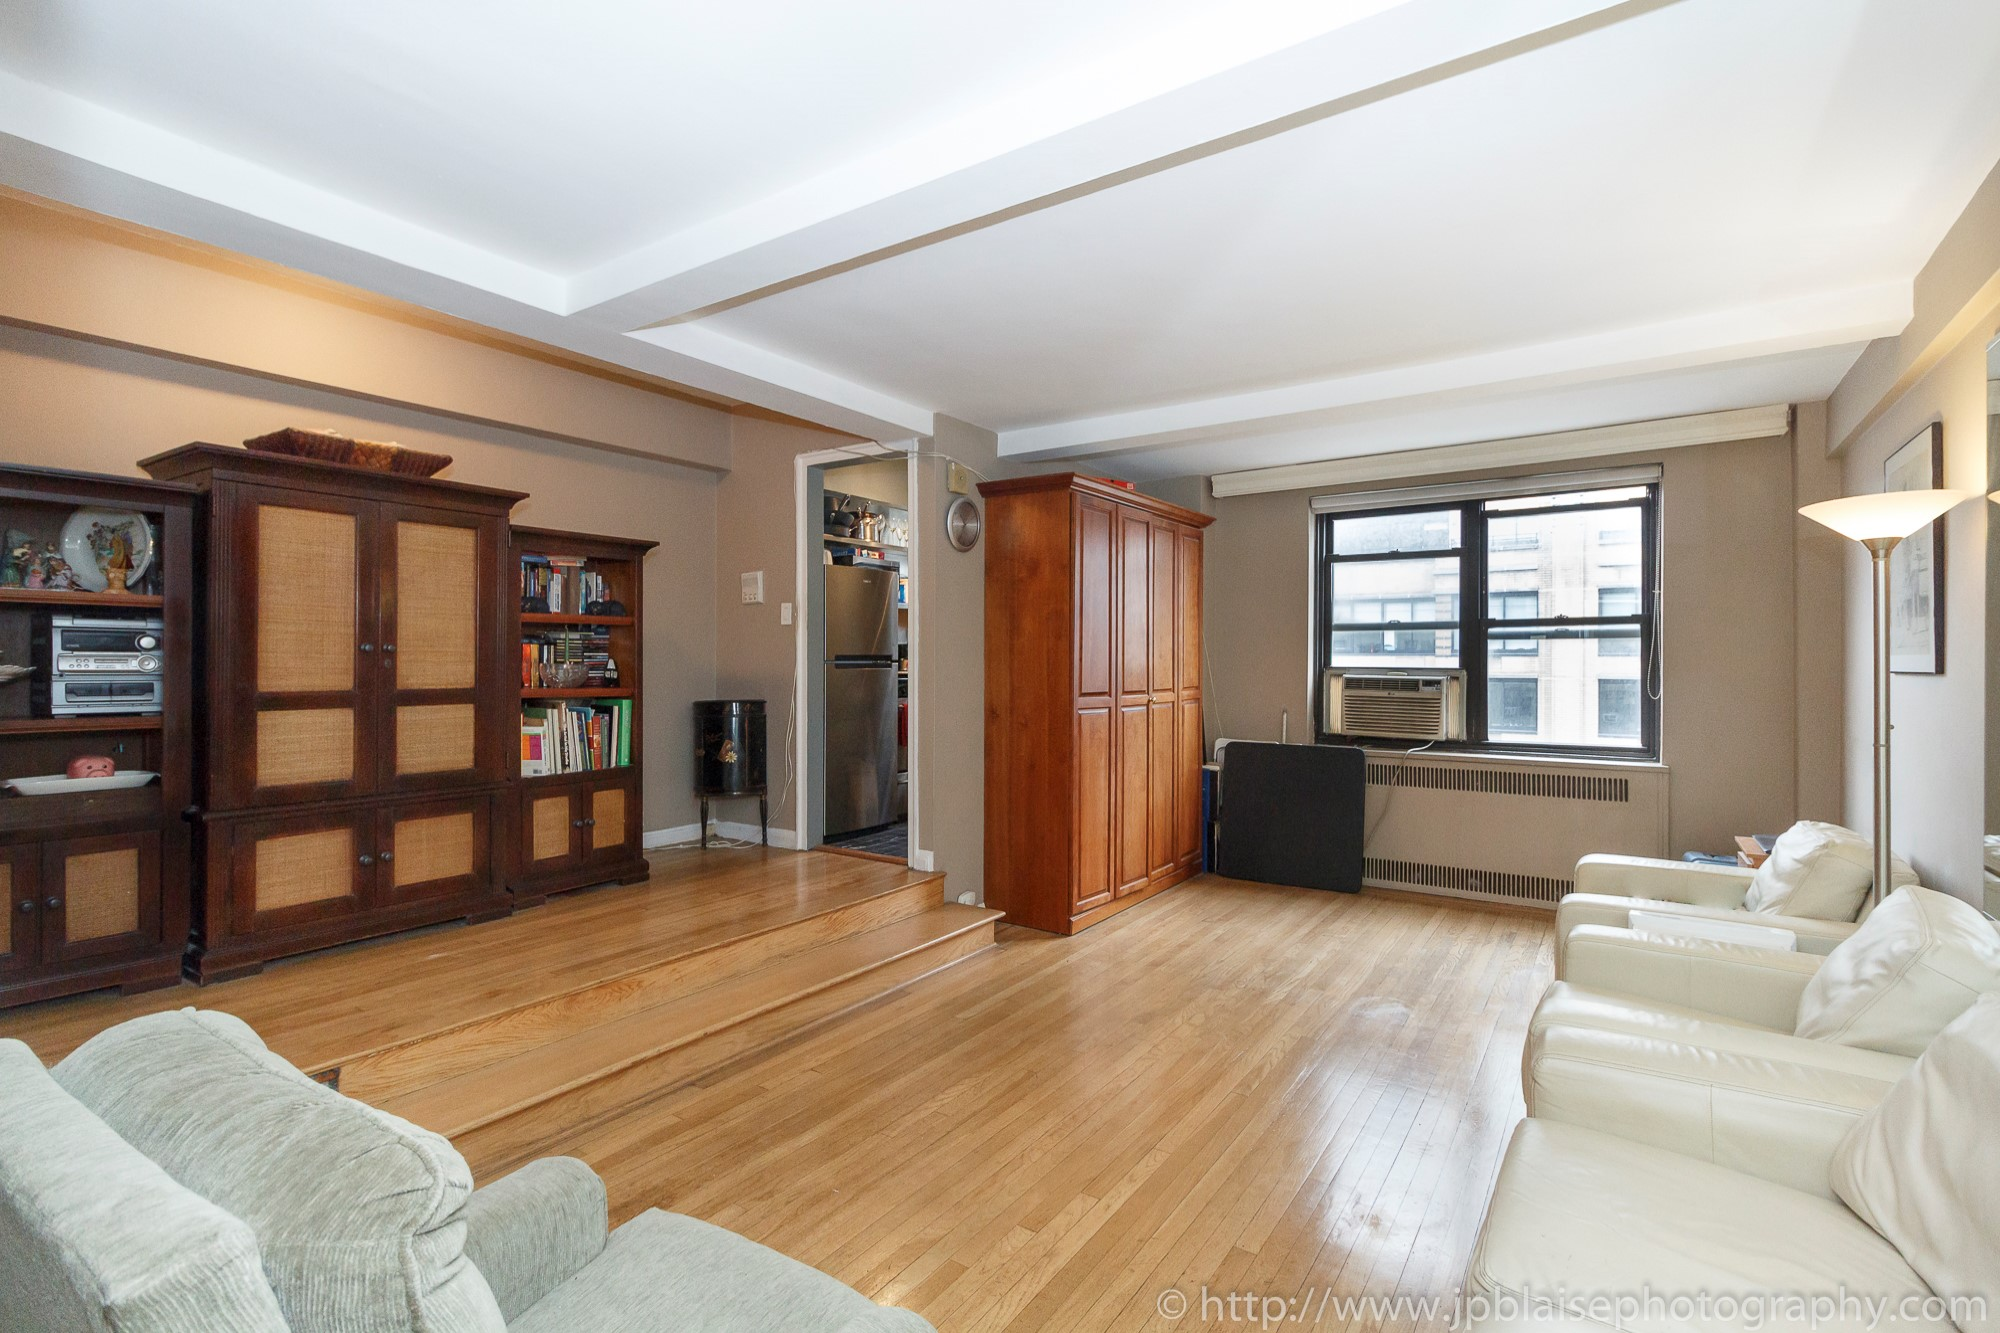 New york apartment photographer alcove studio Chelsea Manhattan real estate interior living